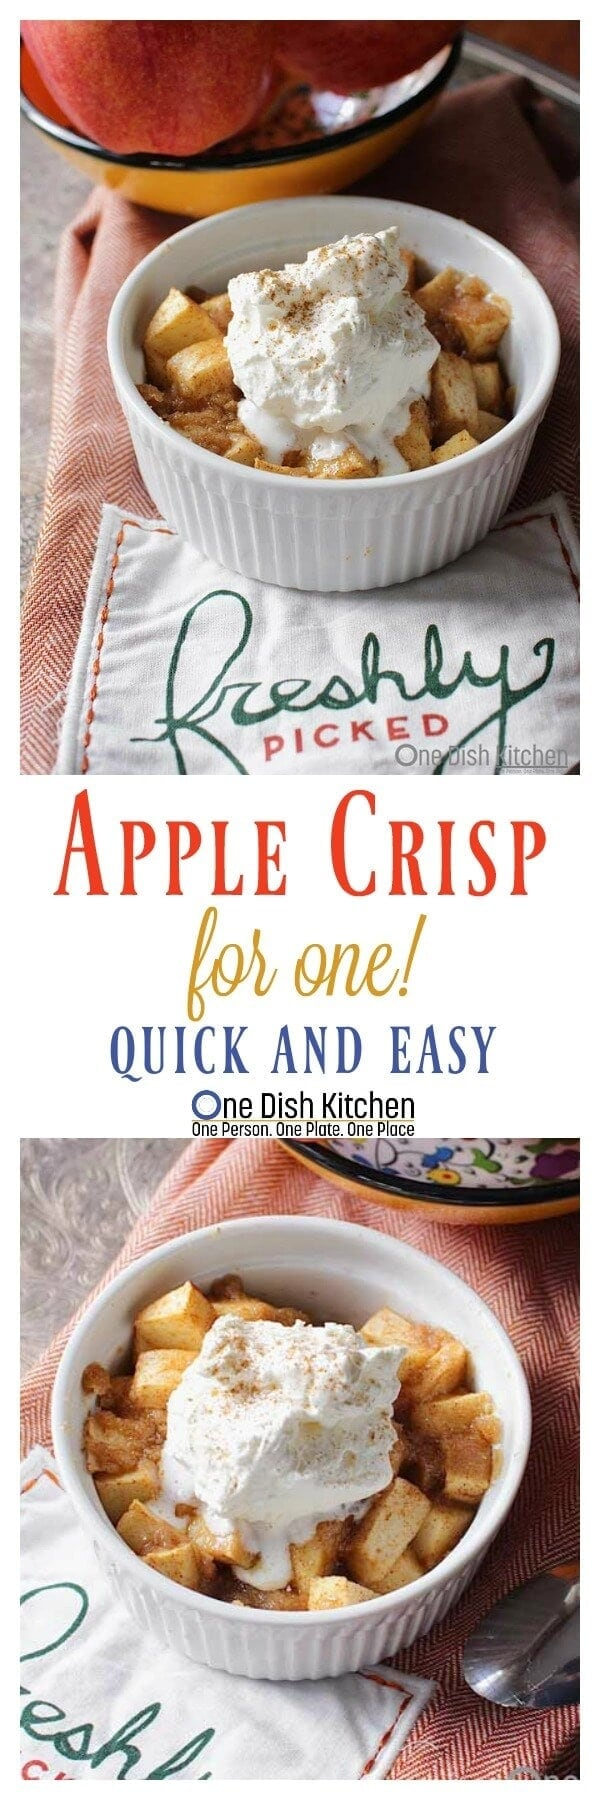 Apple Crisp For One! Apples baked in brown sugar, cinnamon and butter underneath an oat free, buttery topping. The perfect size for a perfect dessert! | One Dish Kitchen